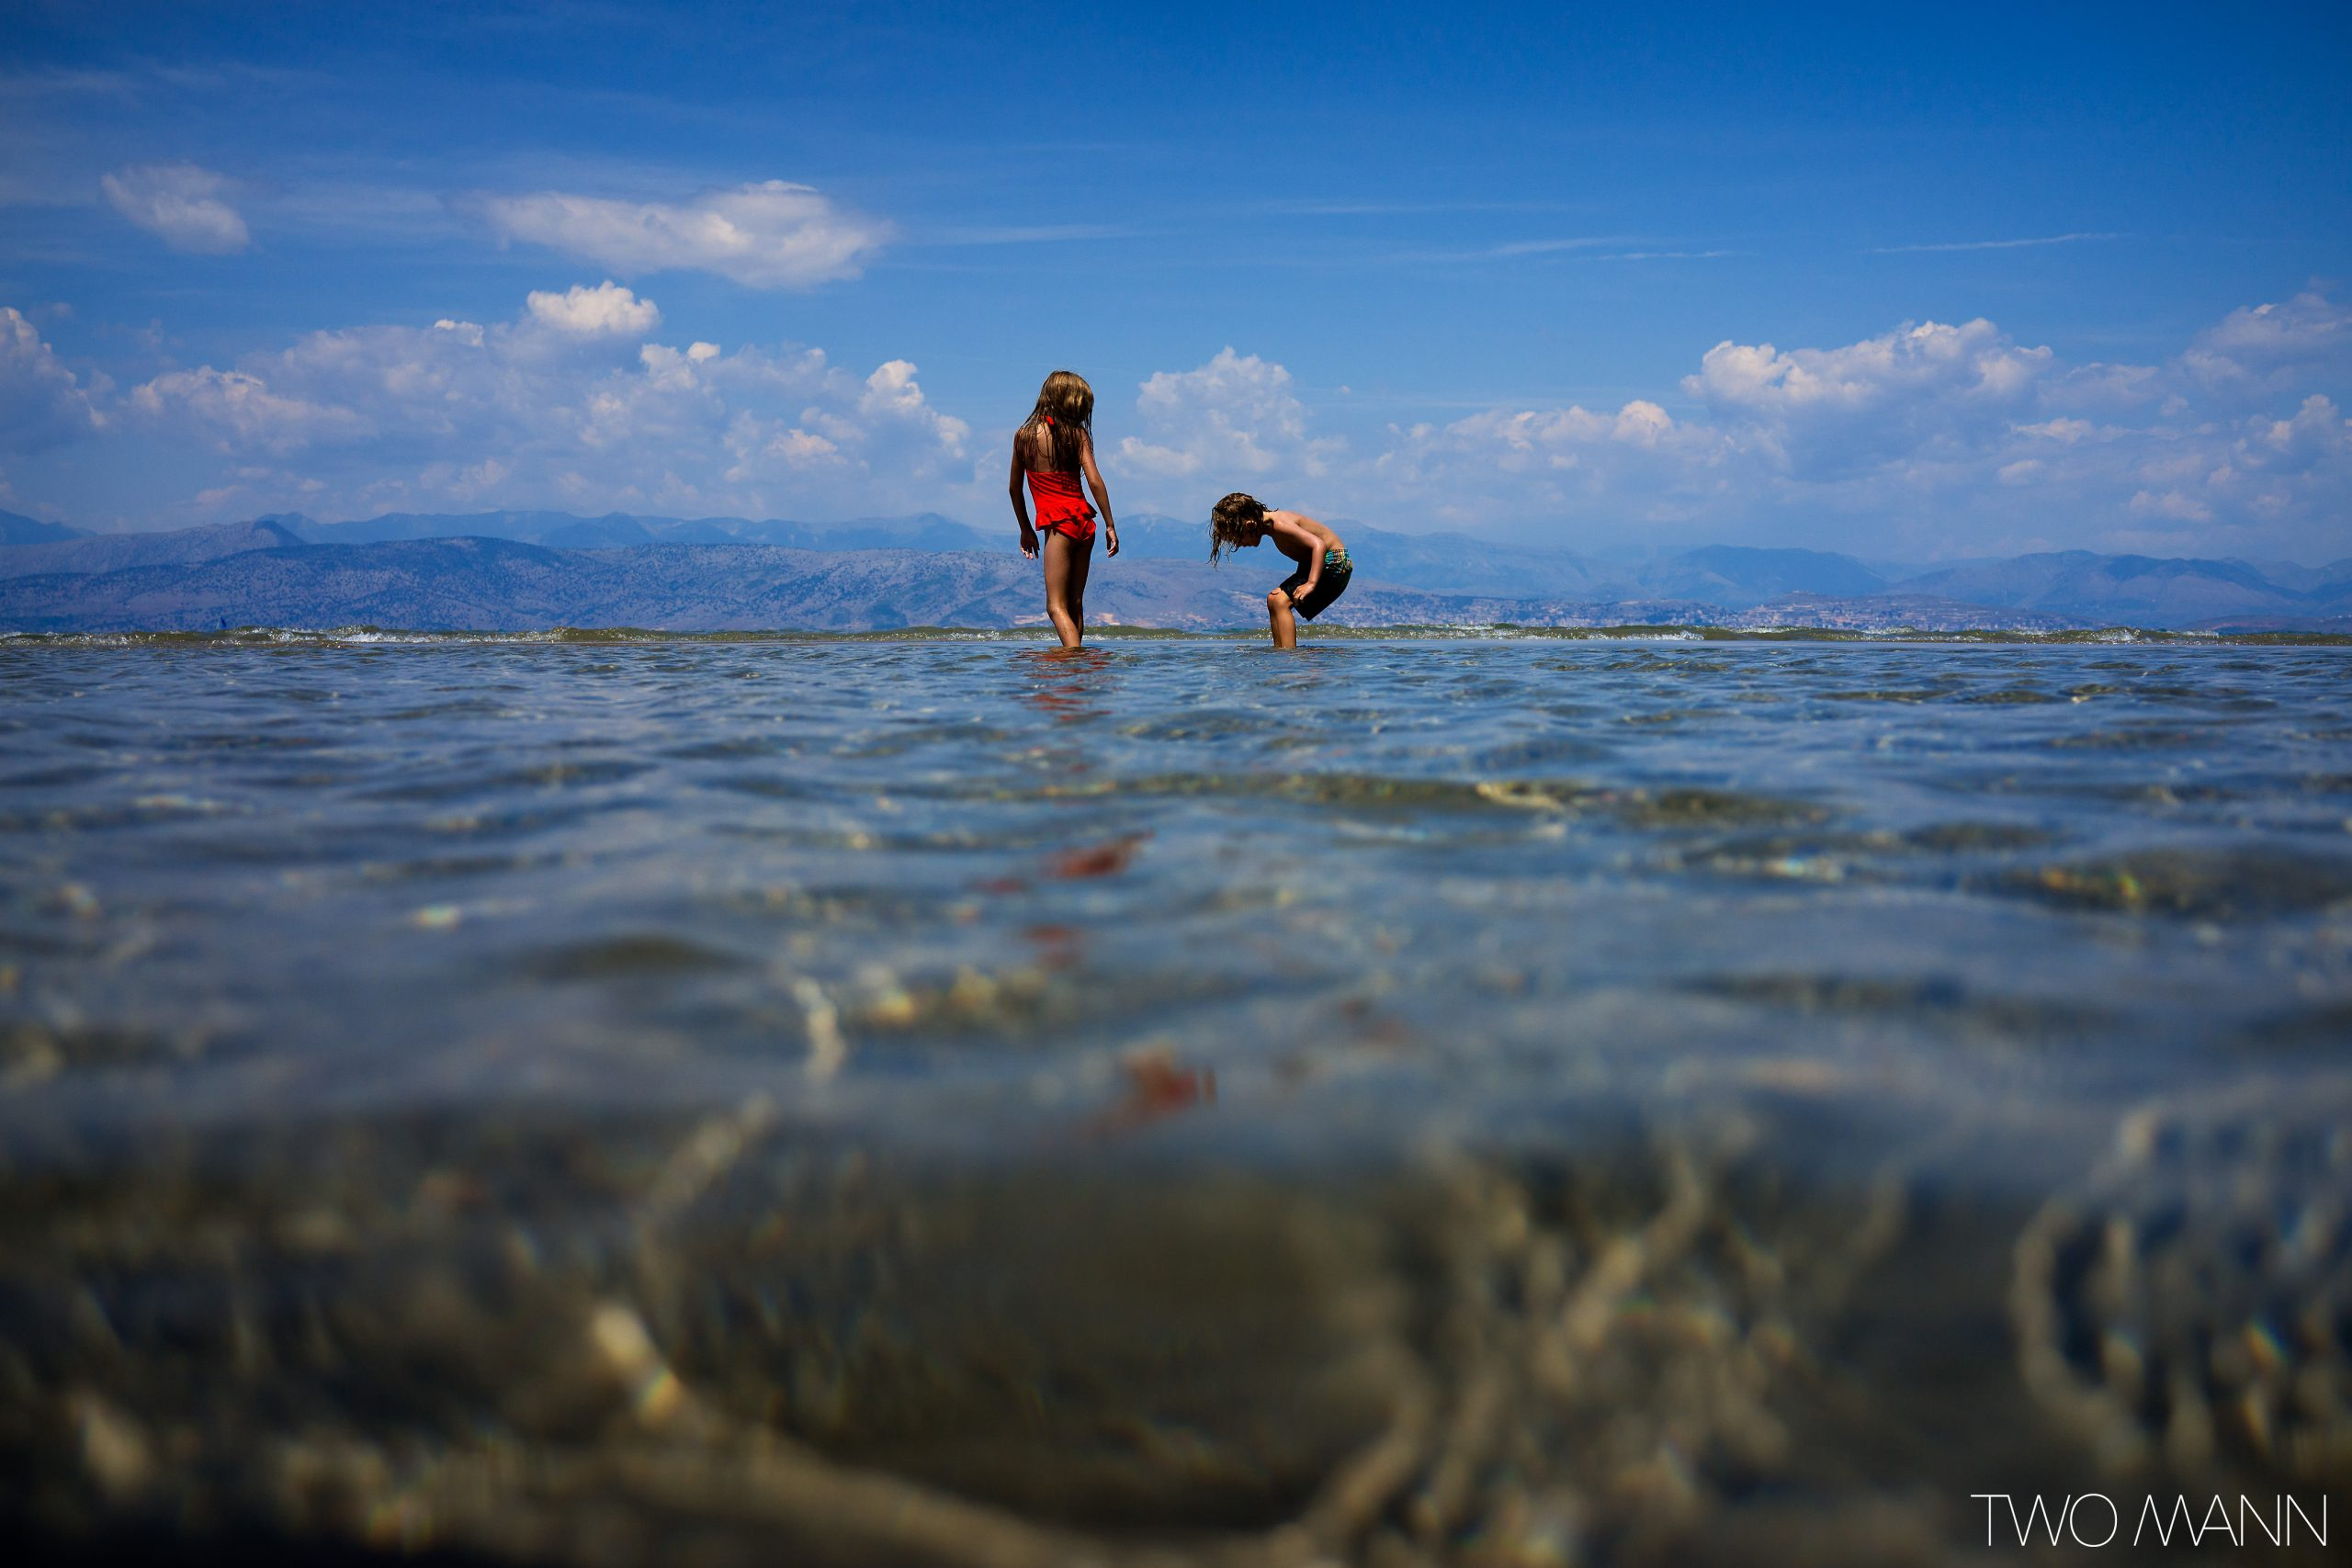 Boy and girl playing in shallow water on the beach